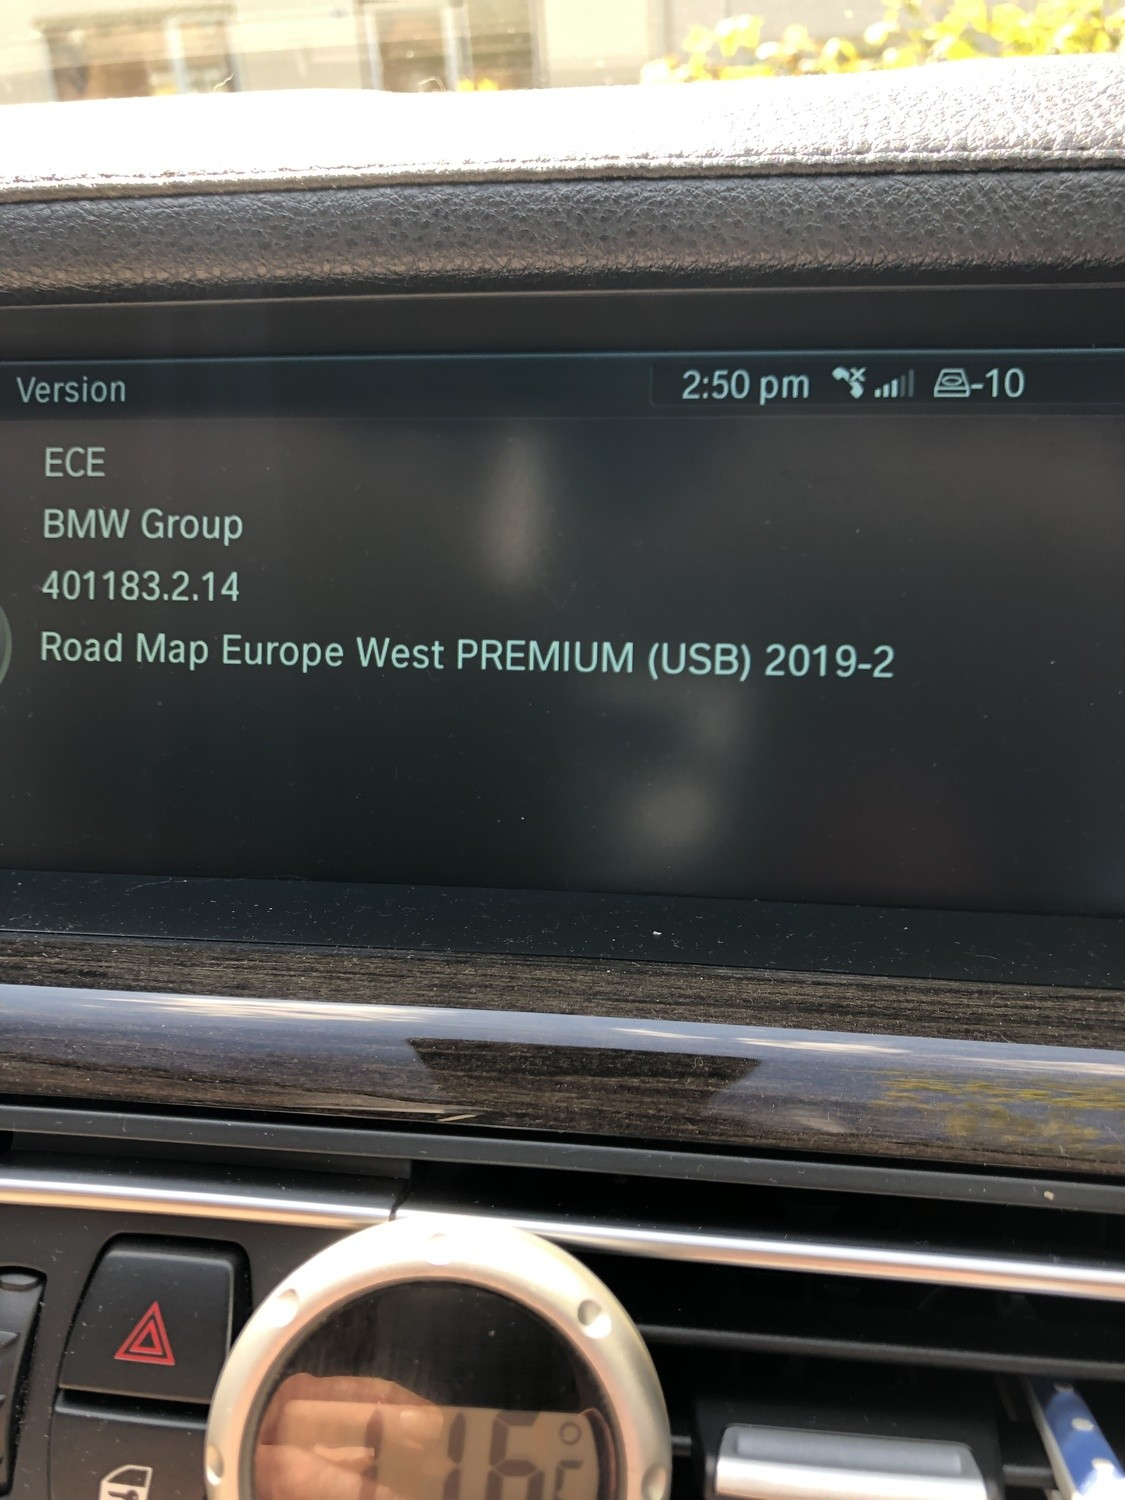 2019 2 Bmw Premium Next Move Motion Sat Nav Update